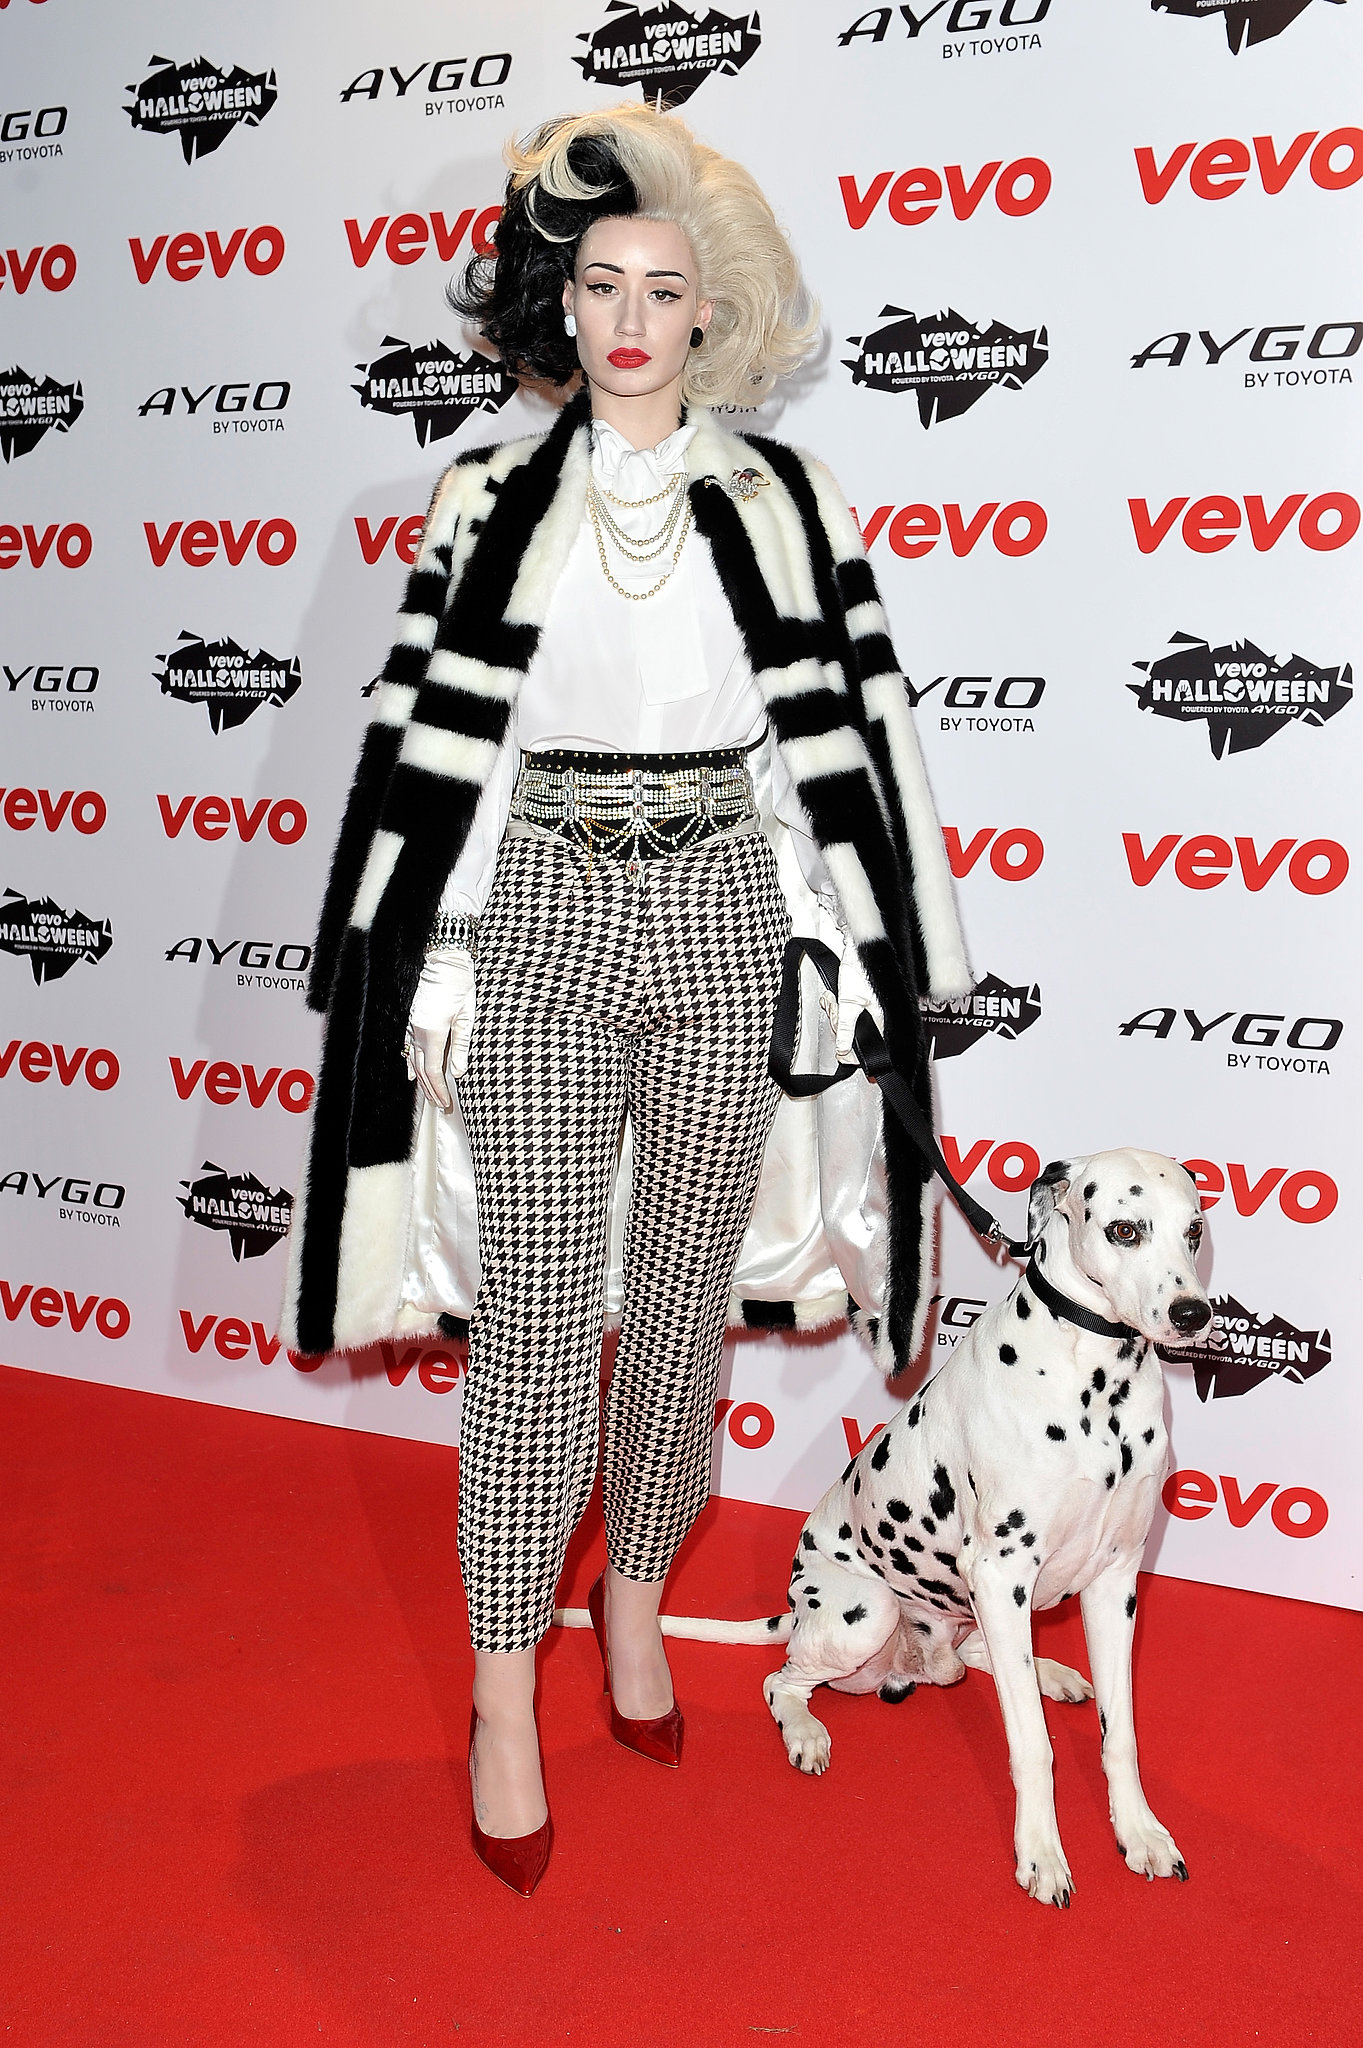 Iggy Azalea went all out for her Cruella de Vil costume at the VEVO Halloween showcase in London.